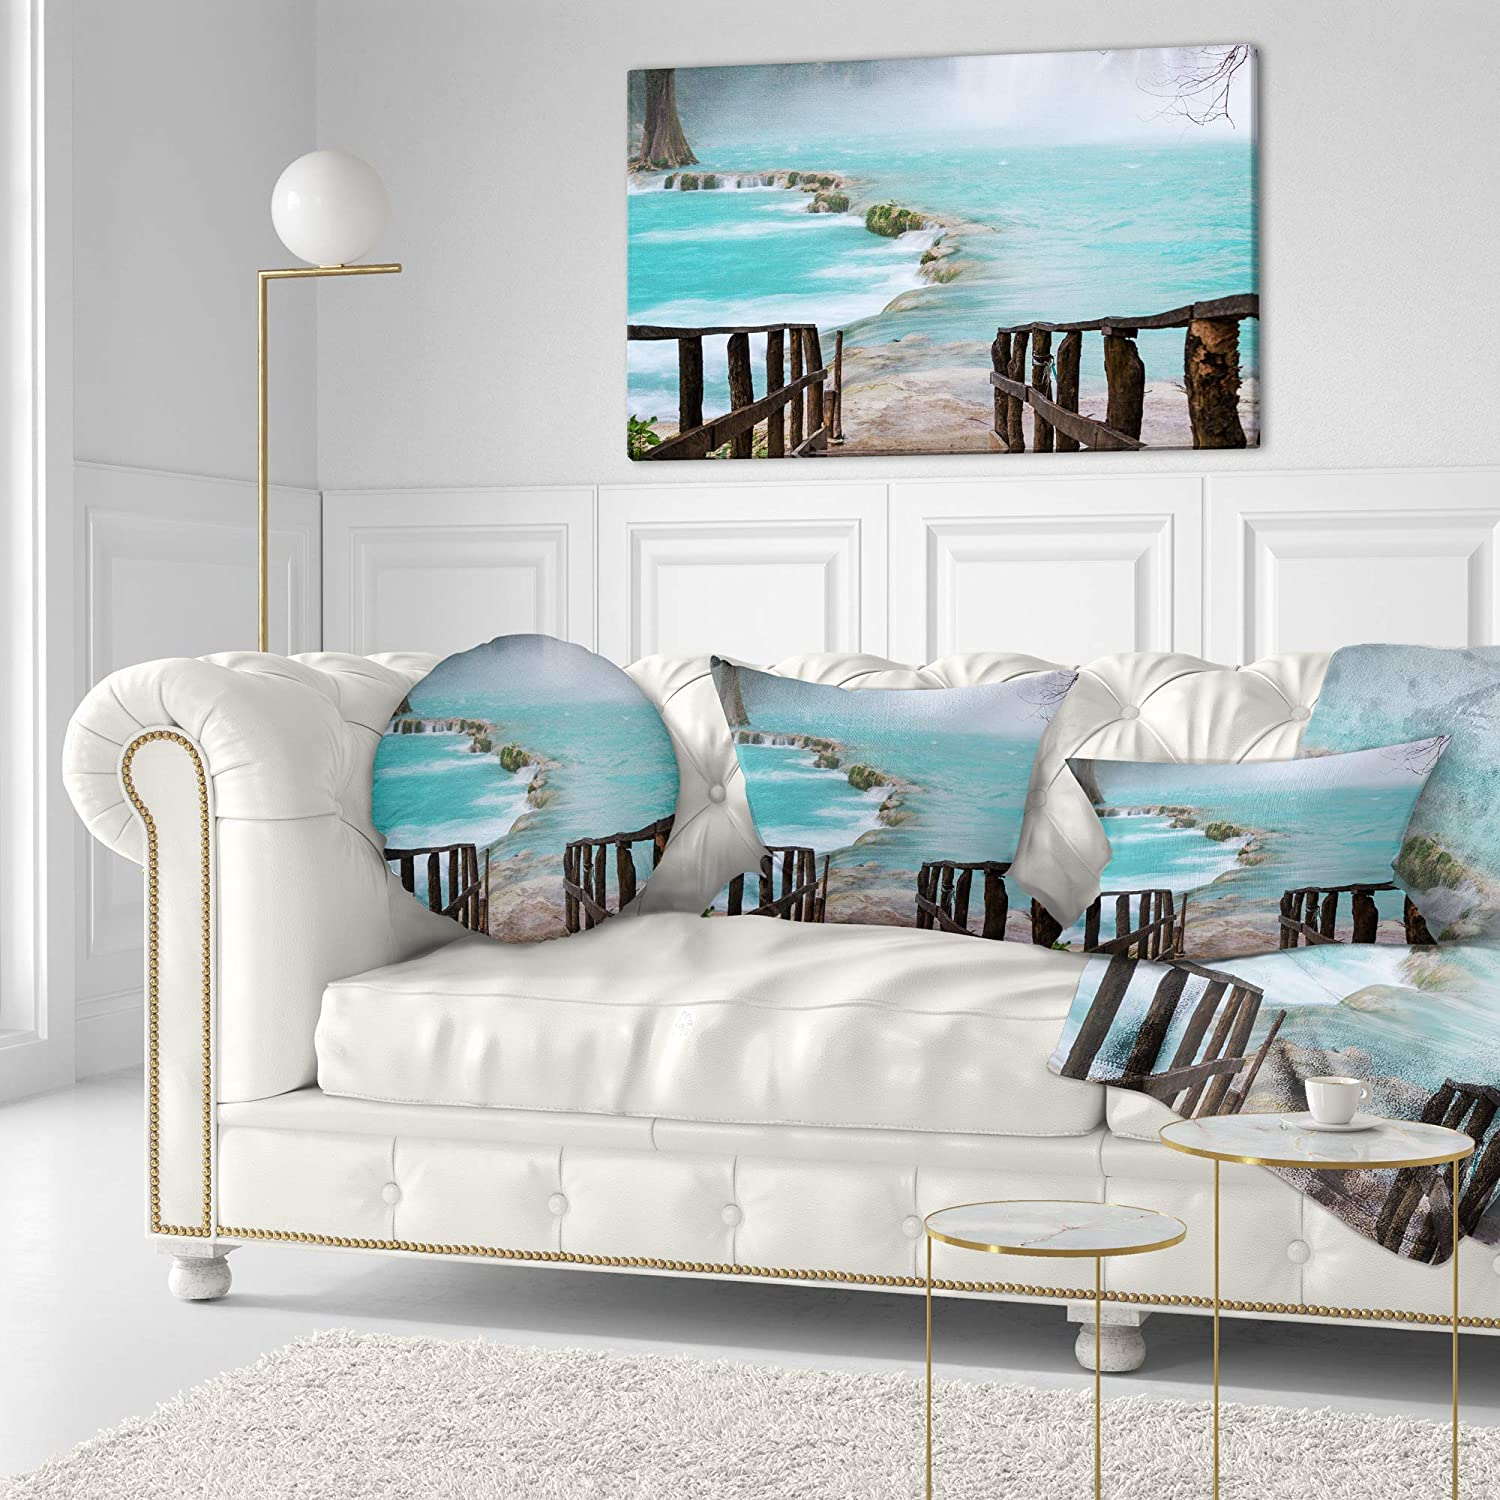 Designart CU12259-20-20-C Old Bridge into Mexico Waterfall Seashore Round Cushion Cover for Living Room Sofa Throw Pillow 20 Insert Printed On Both Side